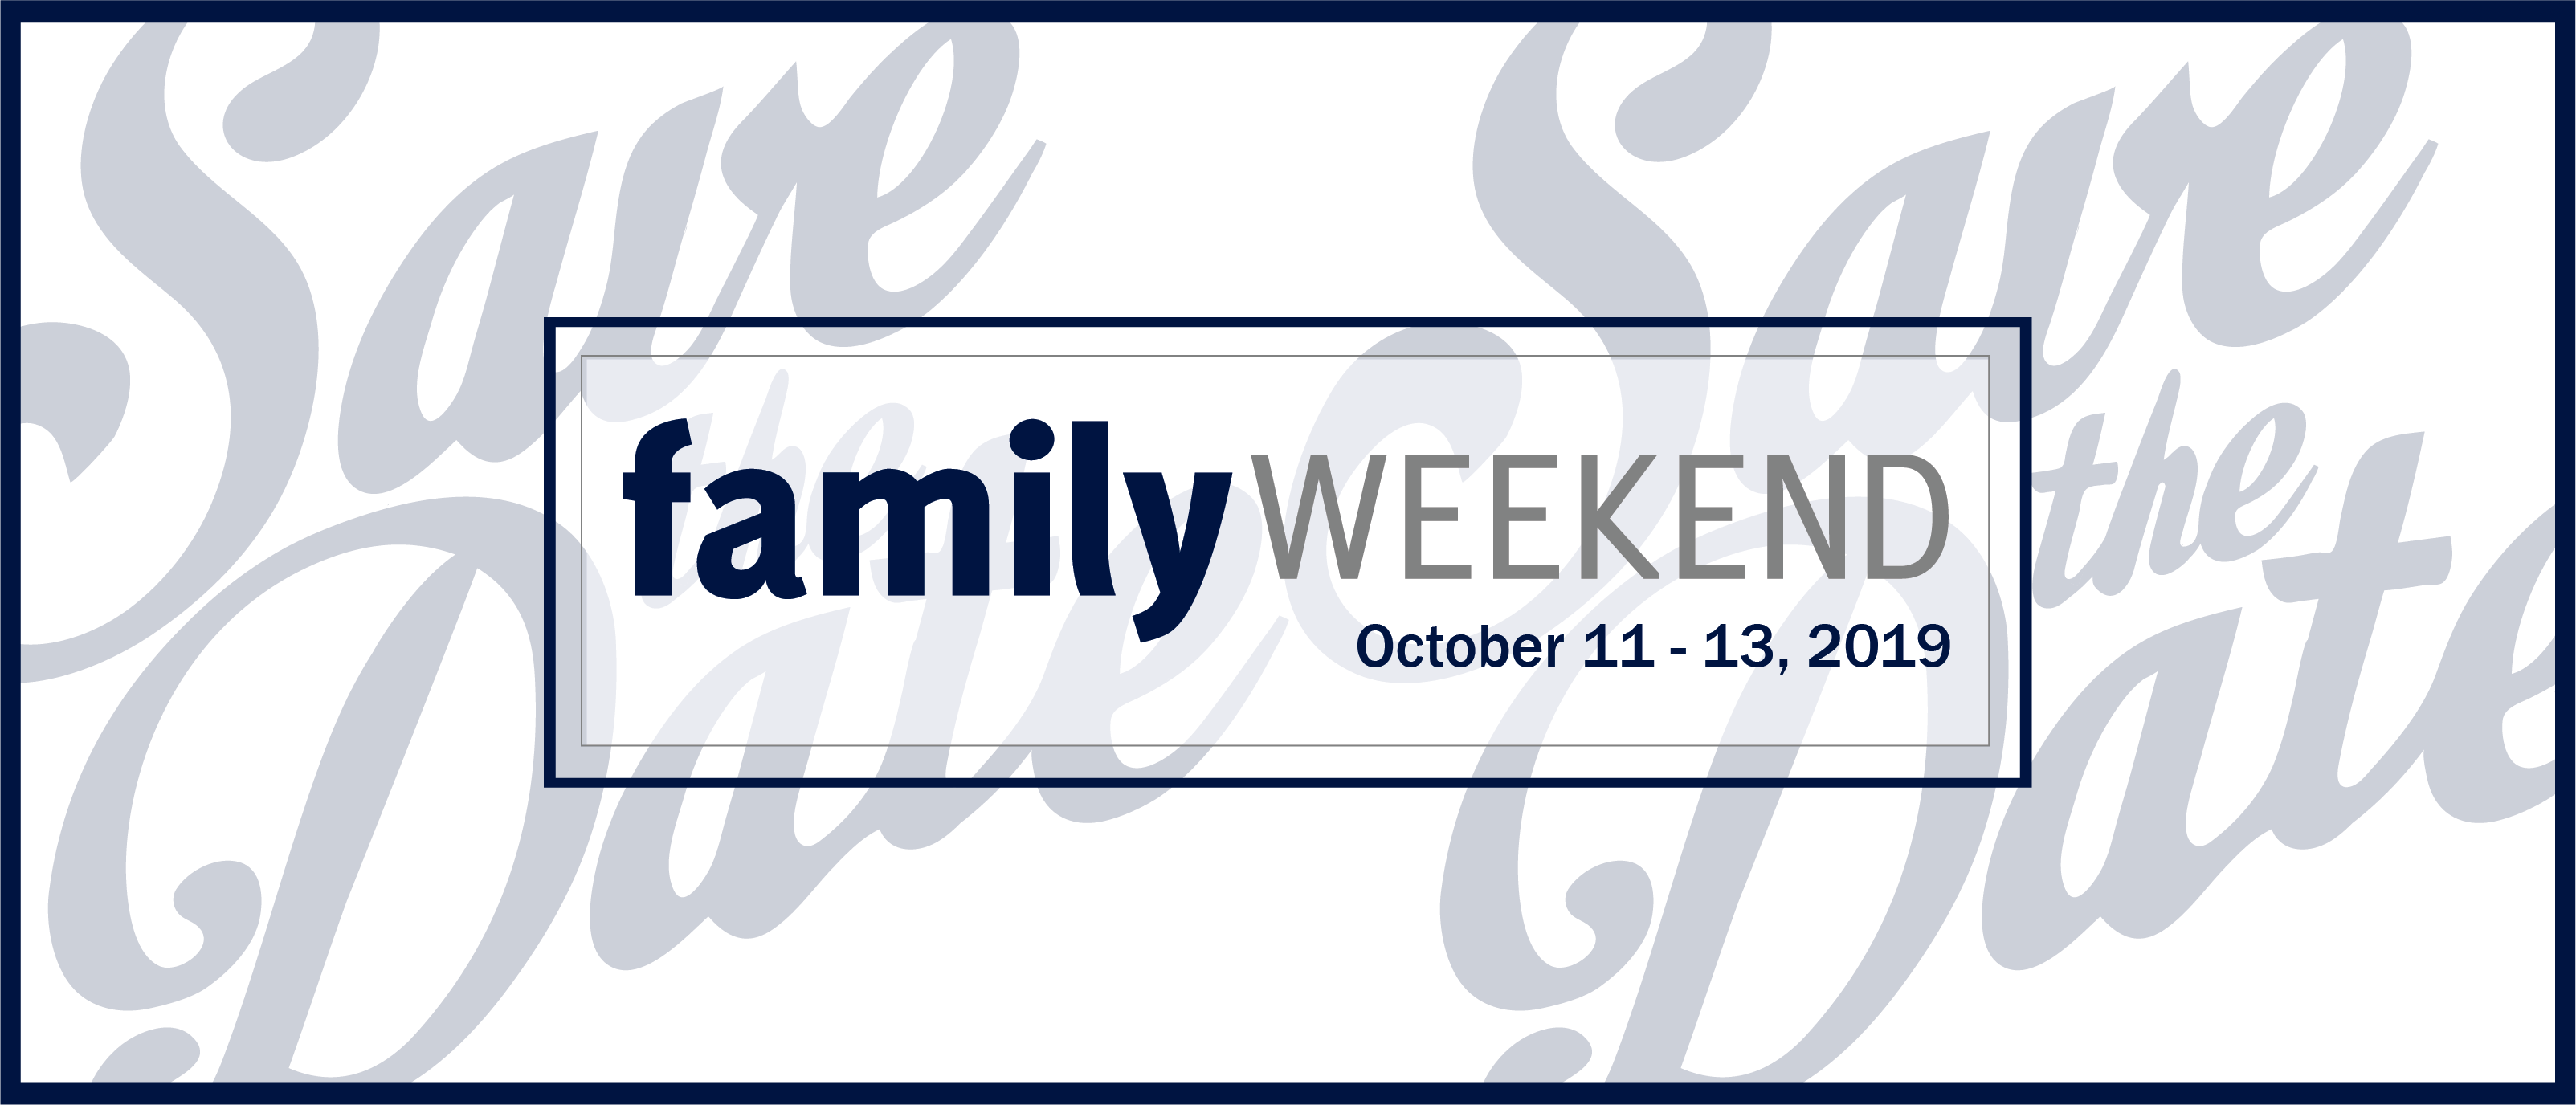 fam wknd save the date web banner 2019